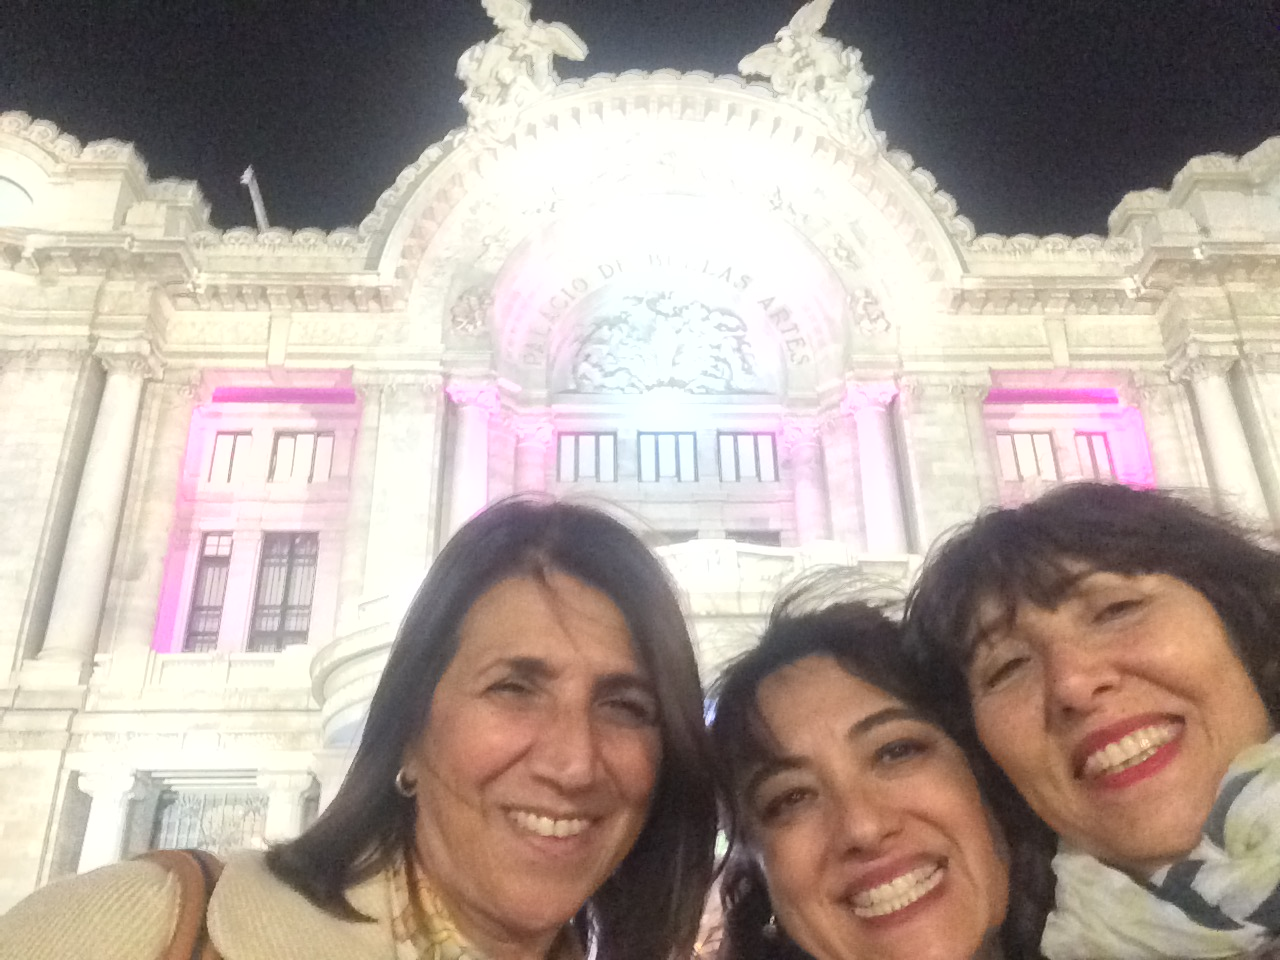 Three Argentinian friends happy to go and see the ballet in the Palacio de Bellas Artes